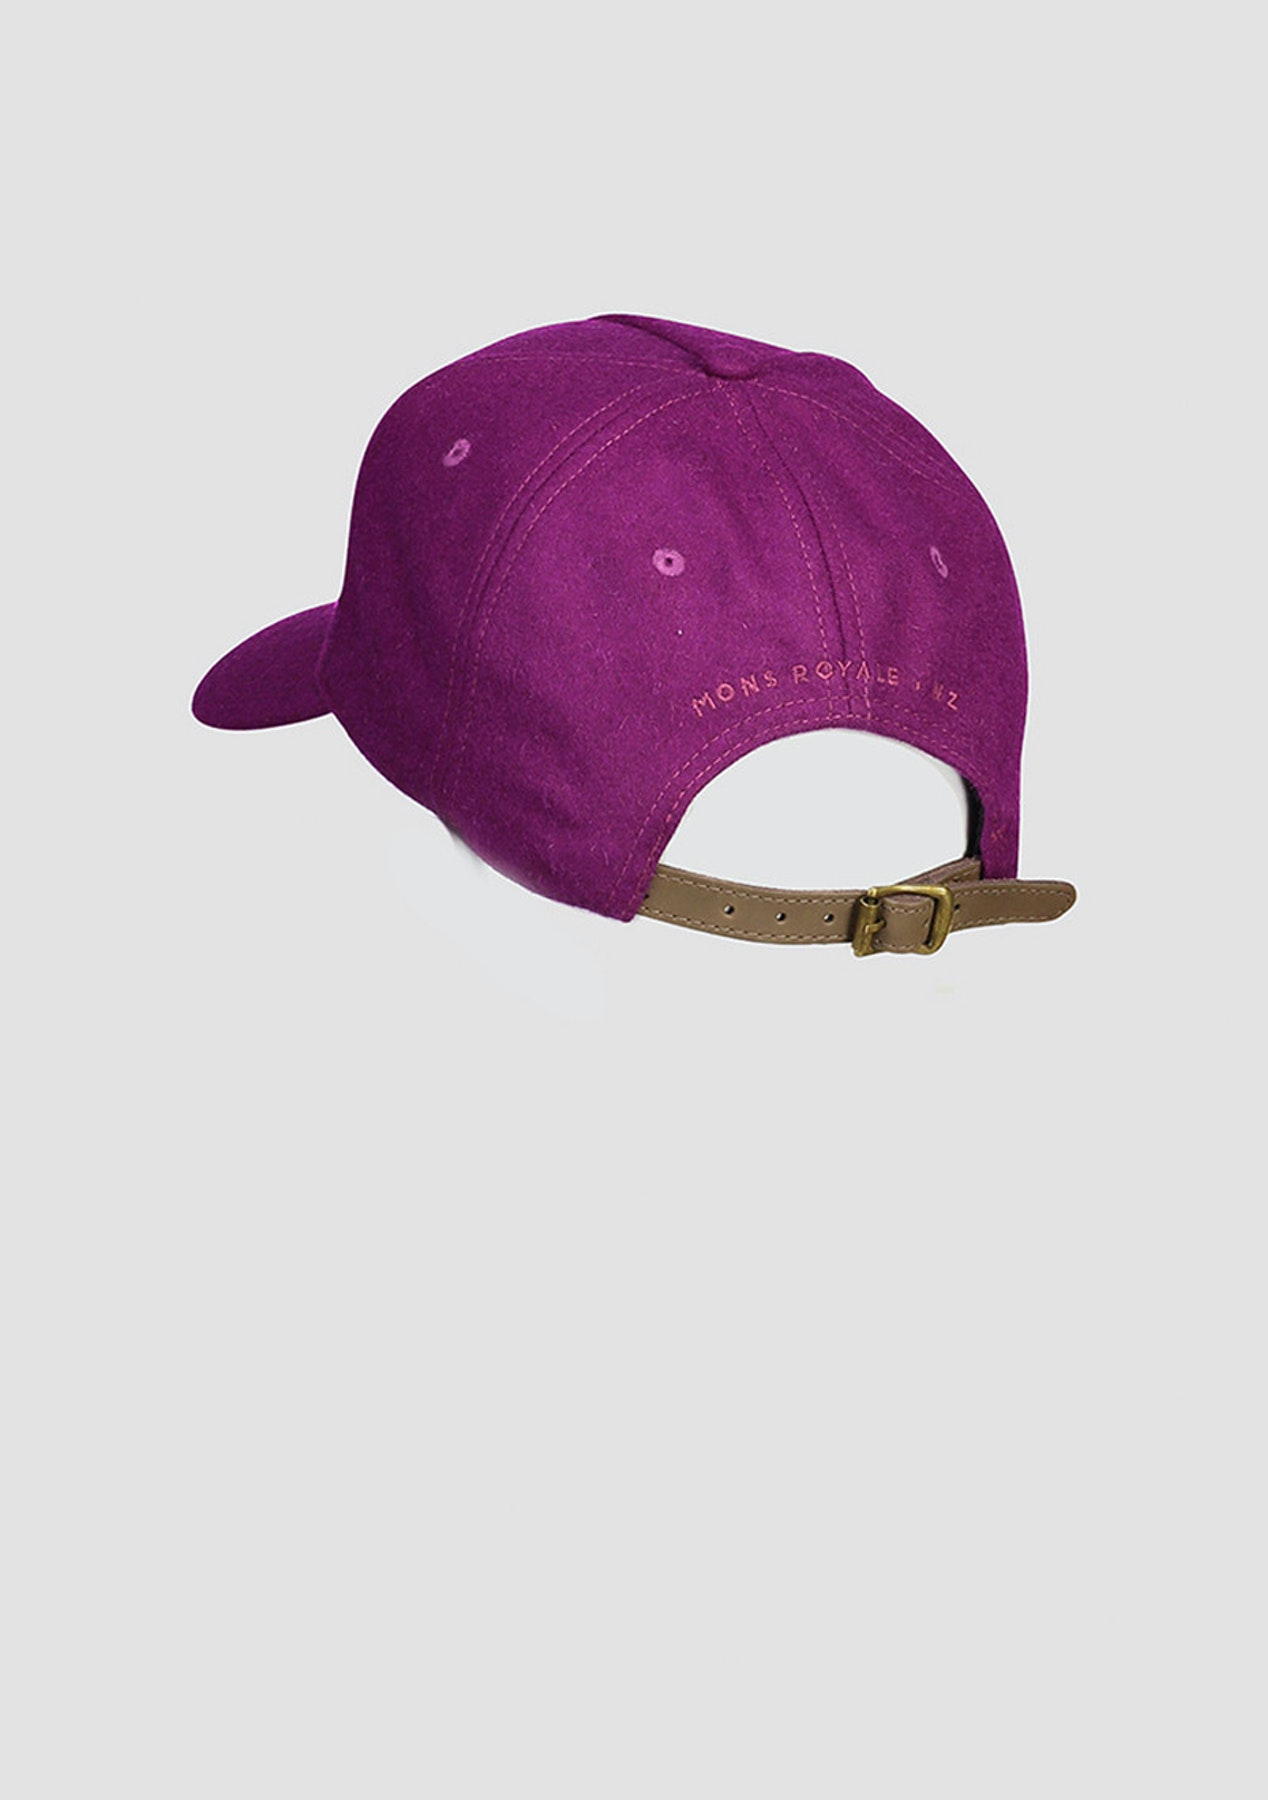 79e1bc9aa Mons Royale - Unisex Signature Wool Ballcap Pinot - Under Armour & More  Outlet - Onceit